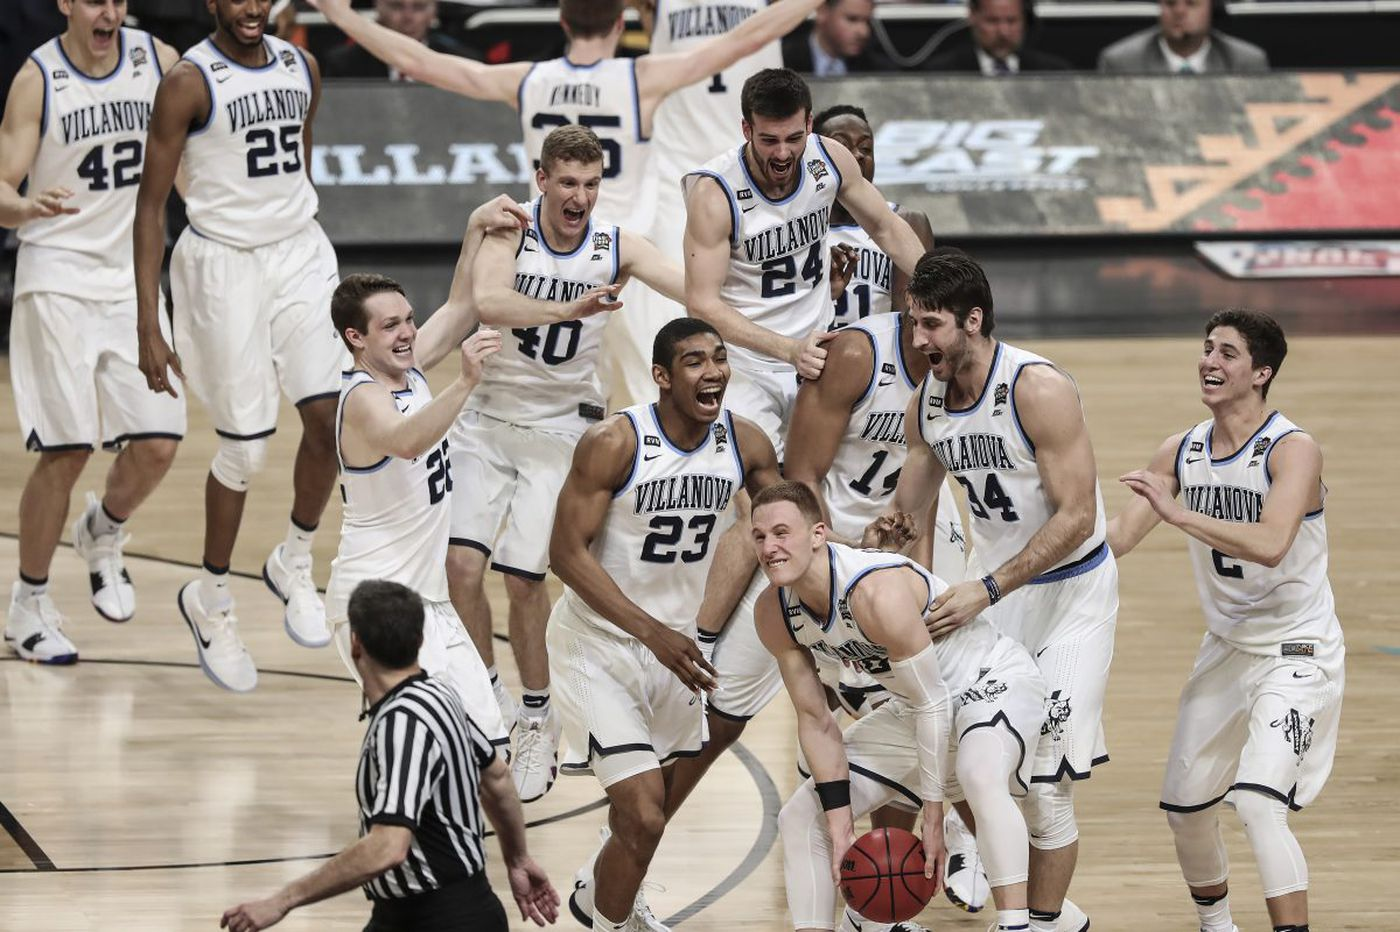 683b3afdb03 Donte DiVincenzo leads Villanova to NCAA championship in 79-62 win over  Michigan